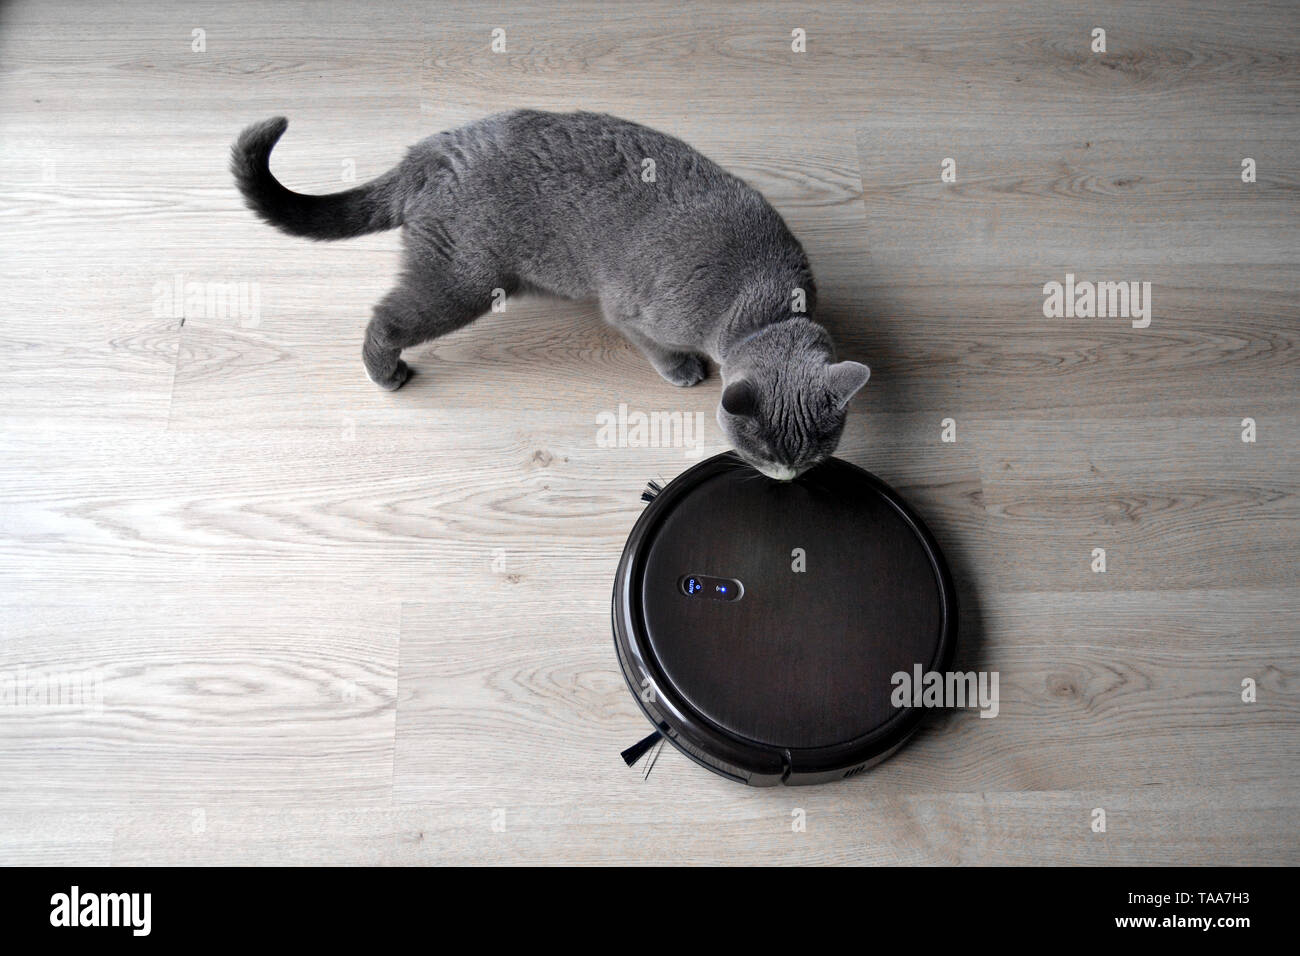 Robotic vacuum cleaner with a fluffy british shorthair cat in the room. Close up. - Stock Image